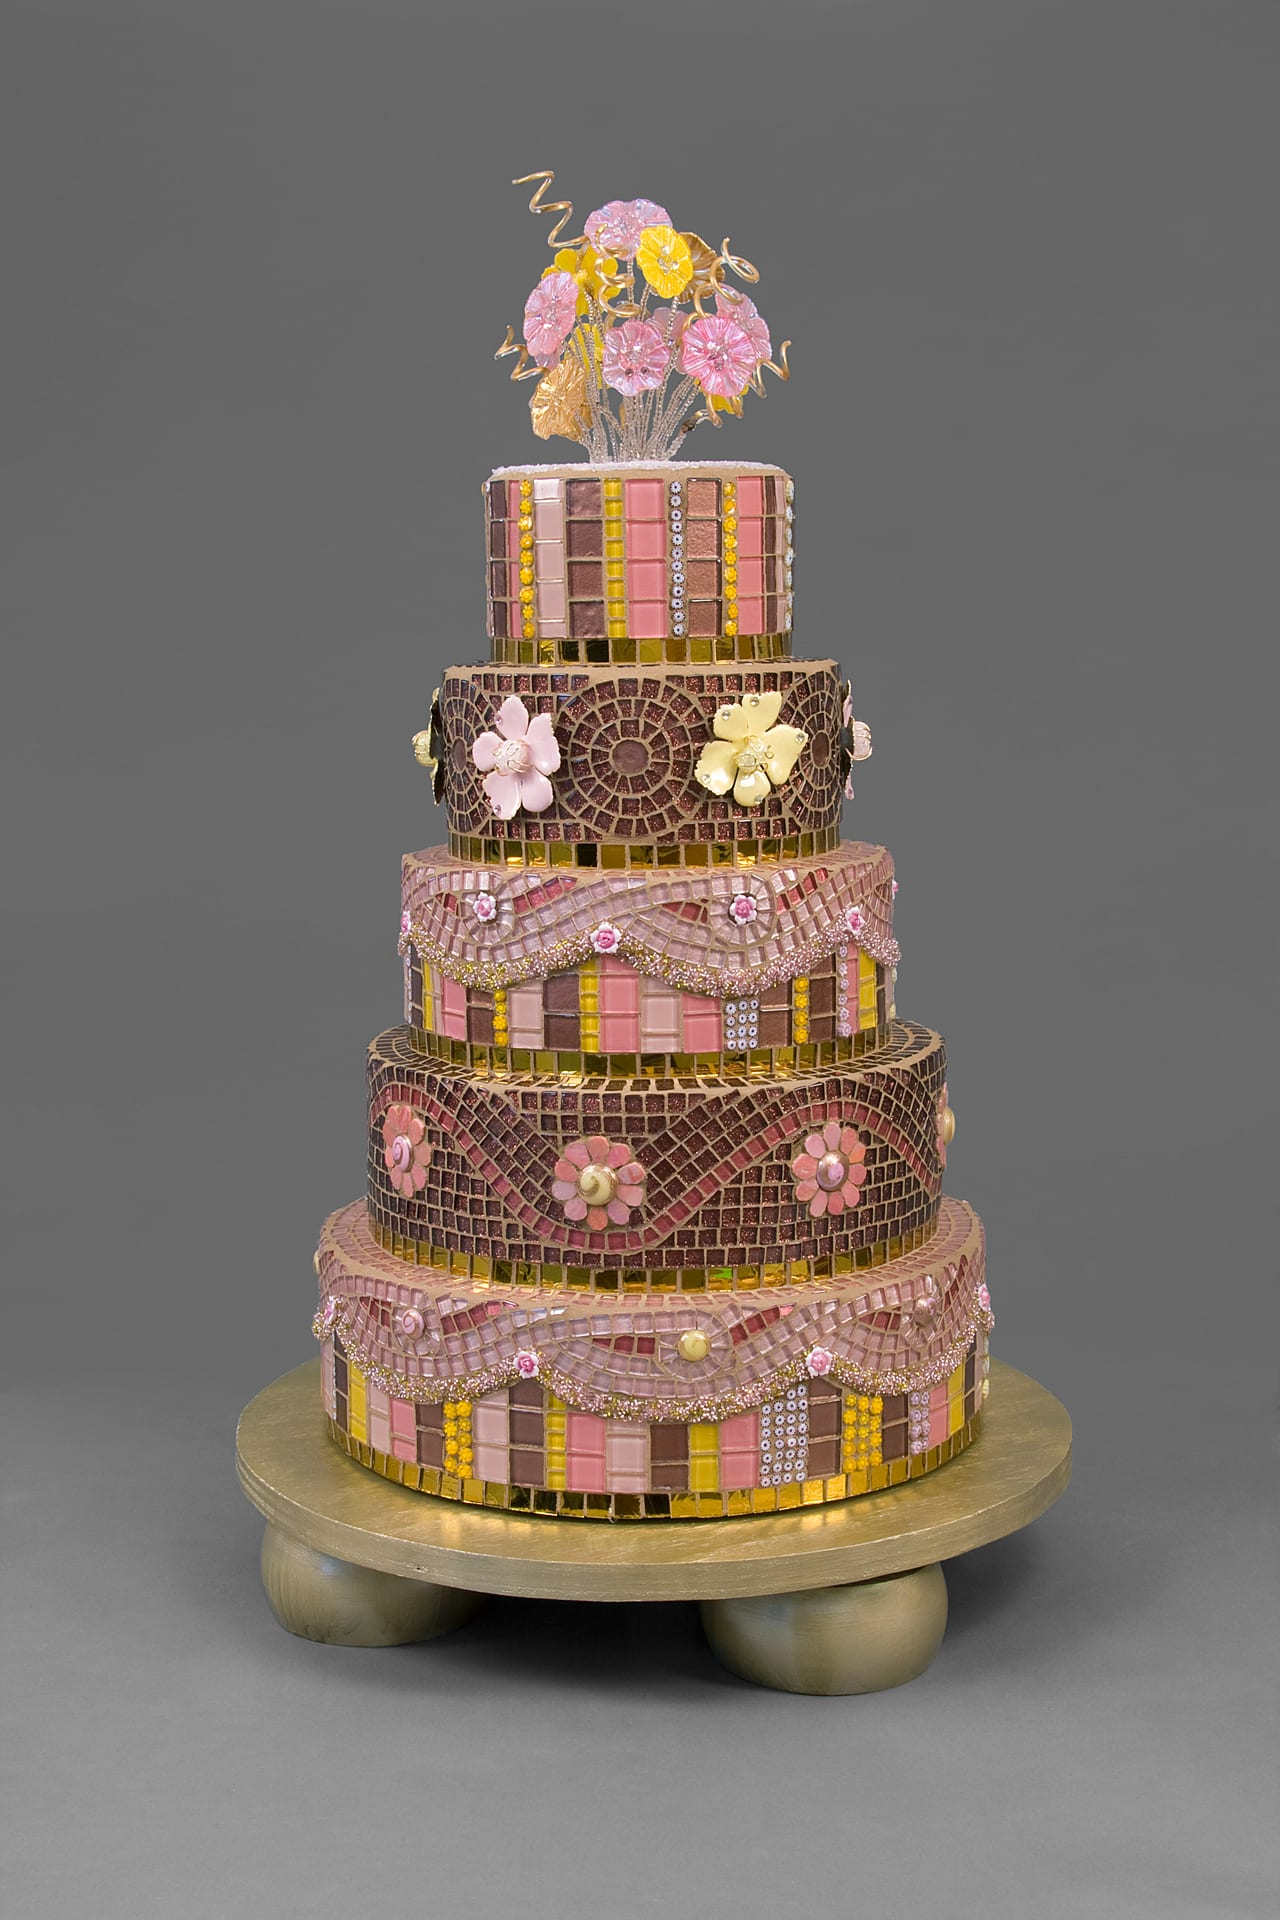 """My Wedding Cake"" by Ruth Tyszka"